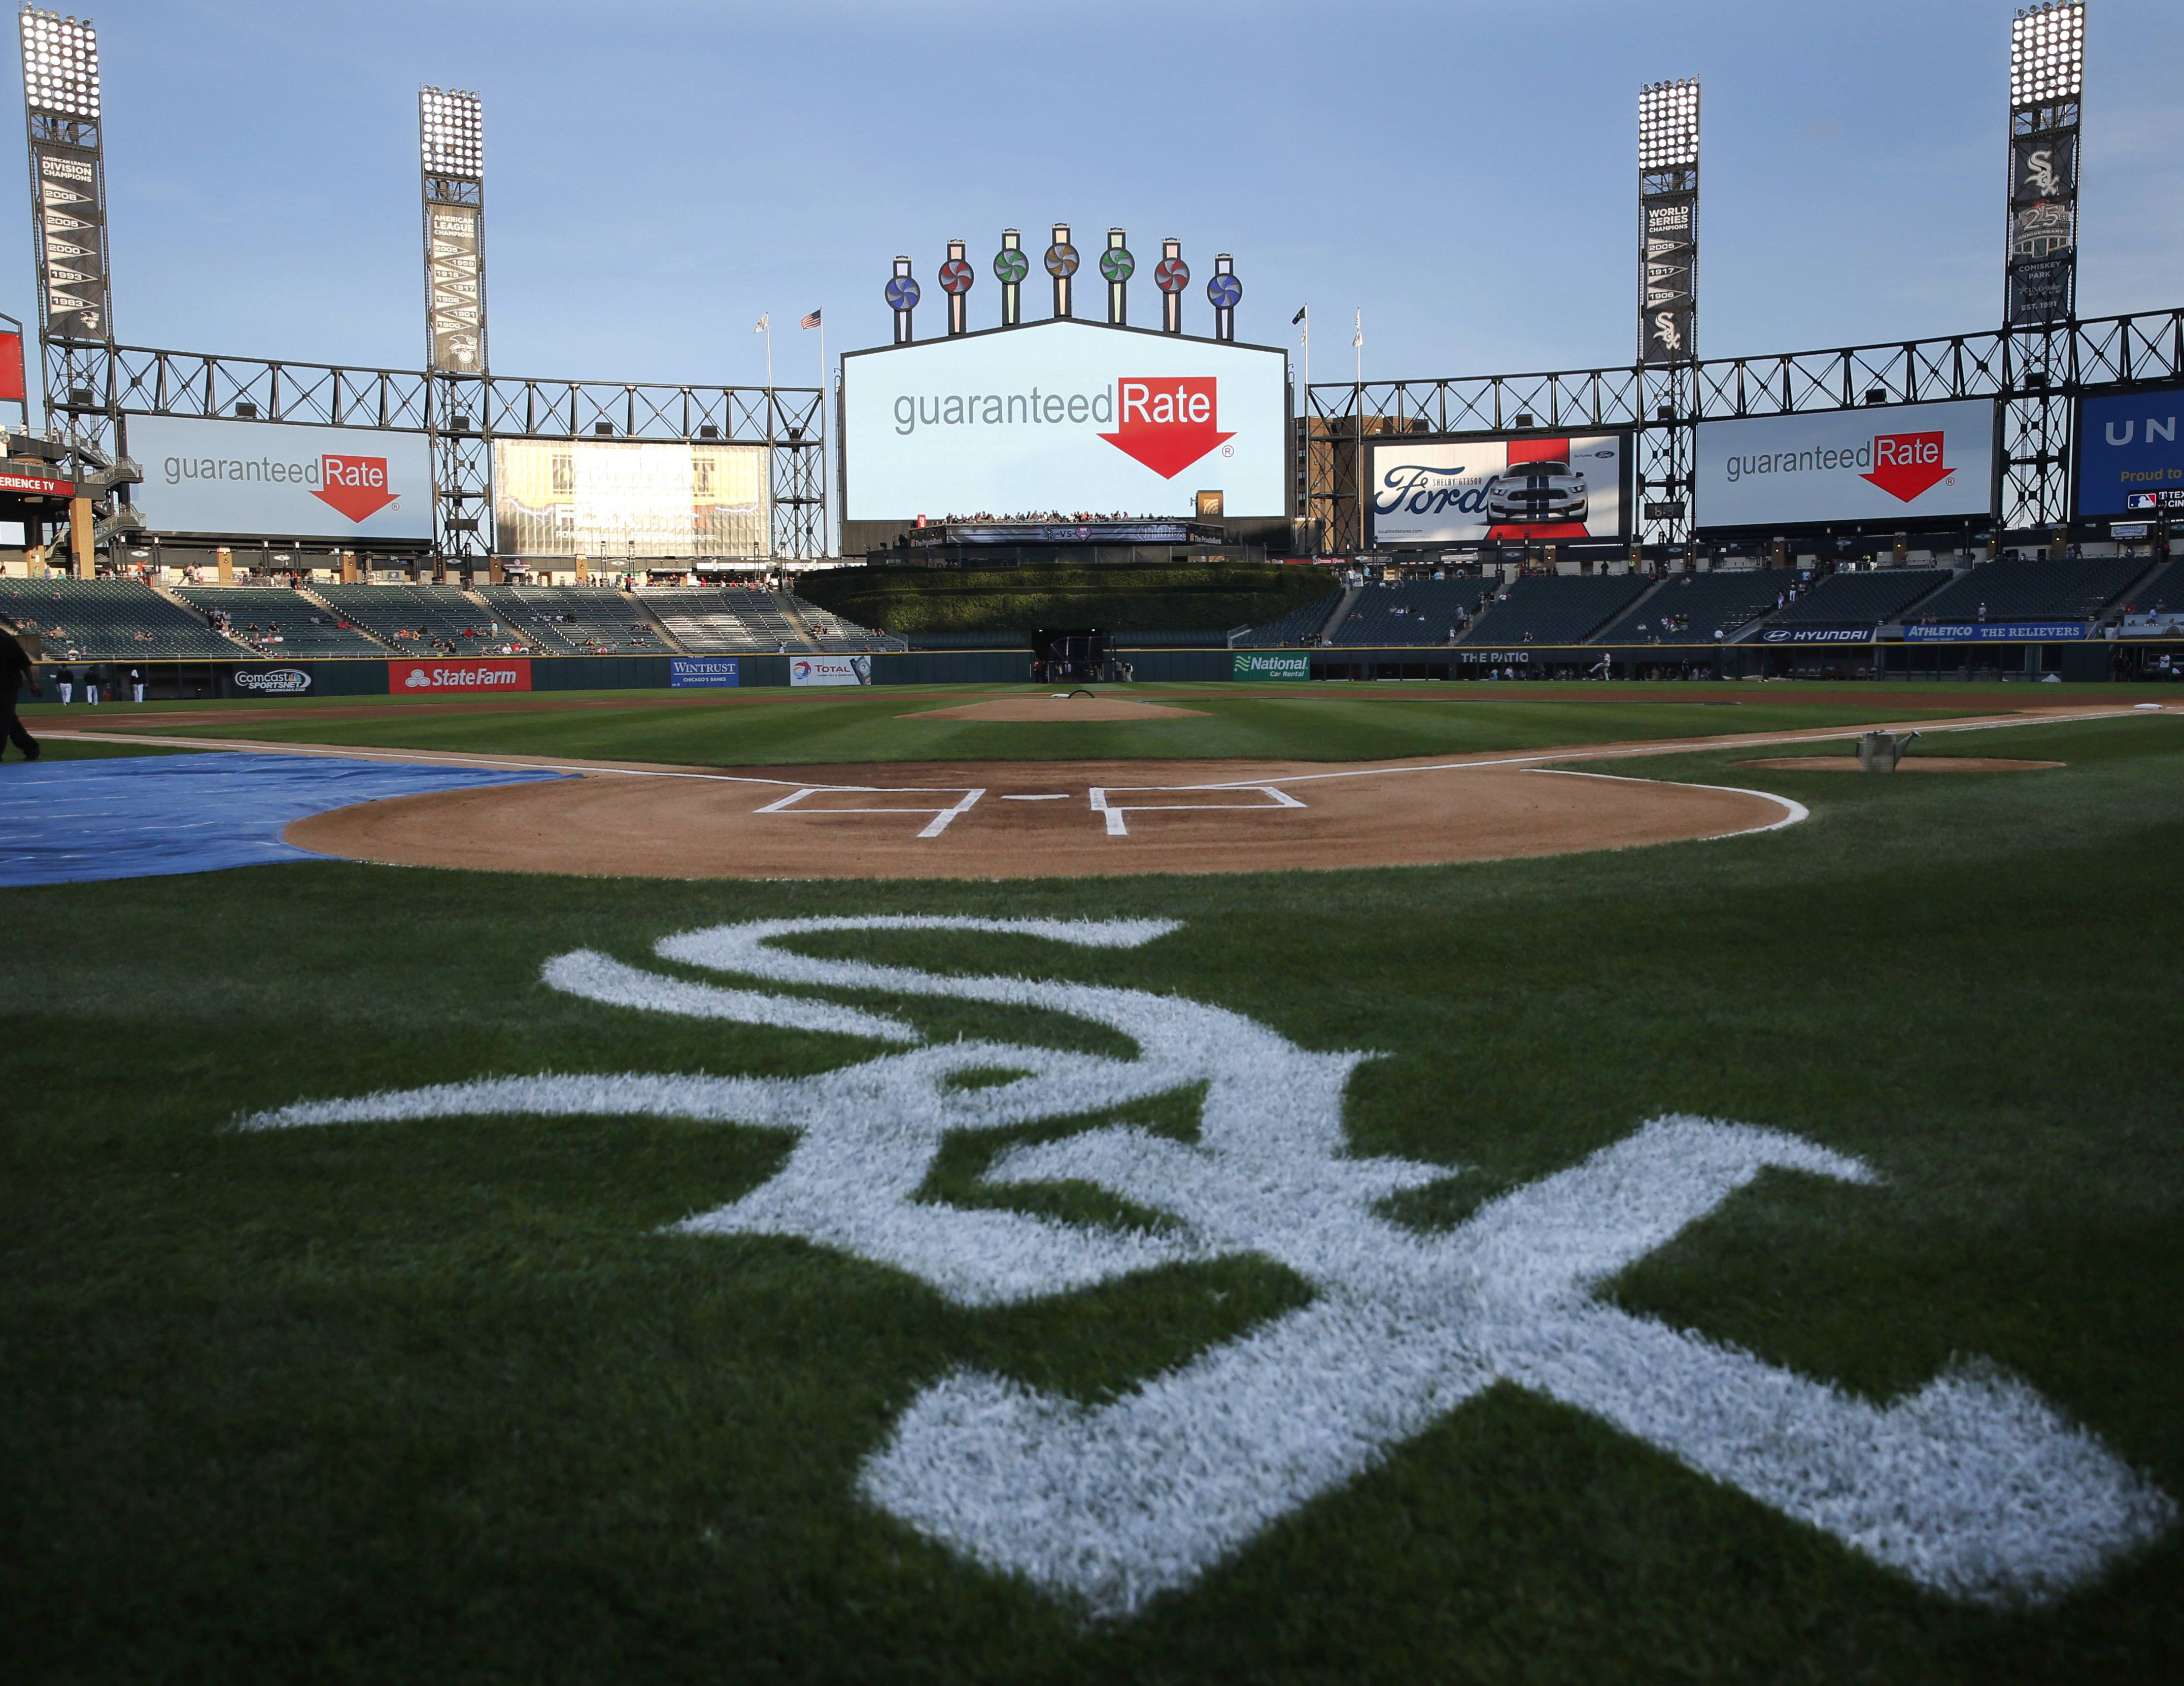 The Chicago White Sox logo is painted behind home plate at U.S. Cellular Field before a baseball game between the Chicago White Sox and the Philadelphia Phillies on Wednesday, Aug. 24, 2016, in Chicago. U.S. Cellular Field will become known as Guaranteed Rate Field starting in November. The team and the mortgage company announced a 13-year naming rights deal on Wednesday. The ballpark has been named U.S. Cellular Field since 2003 after being called new Comiskey Park from 1991 to 2002. (AP Photo/Charles Rex Arbogast)